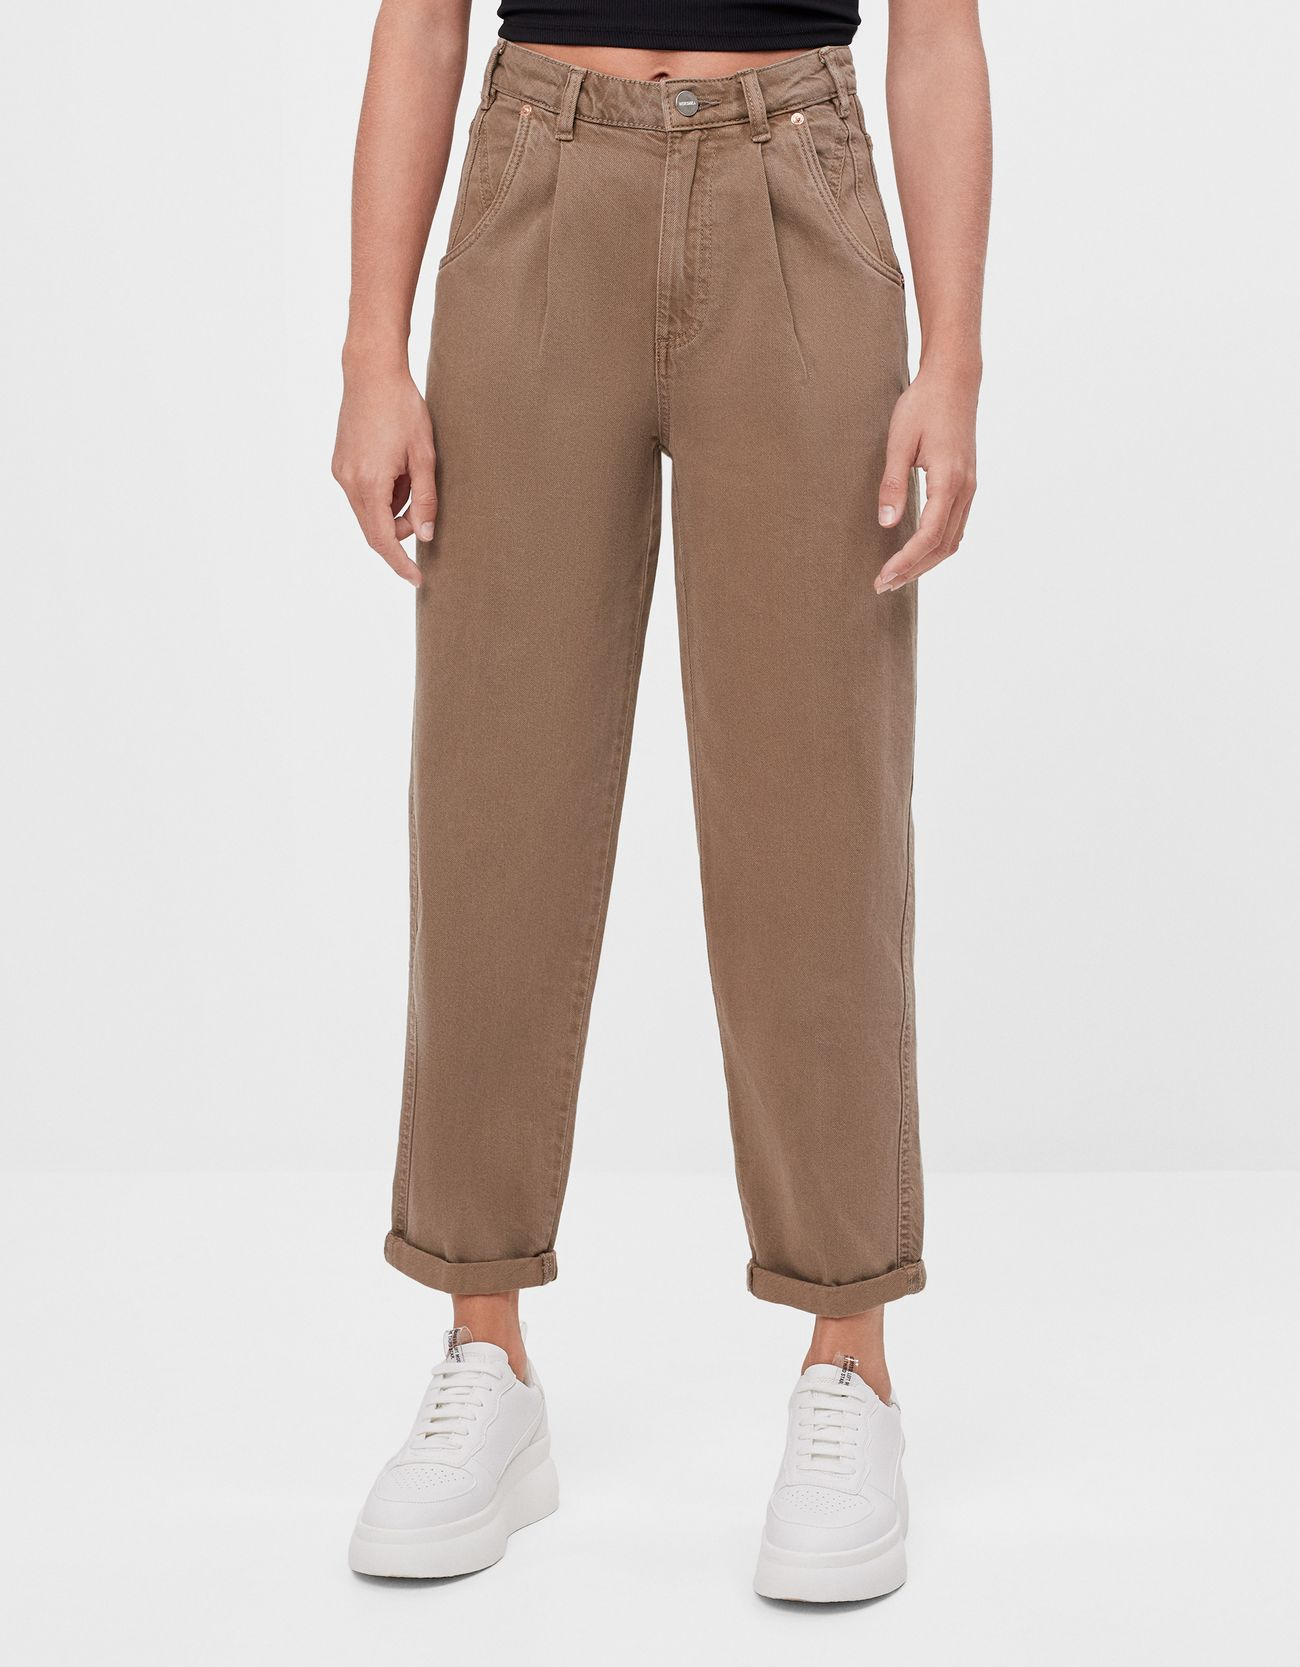 Slouchy trousers with turn-up hems